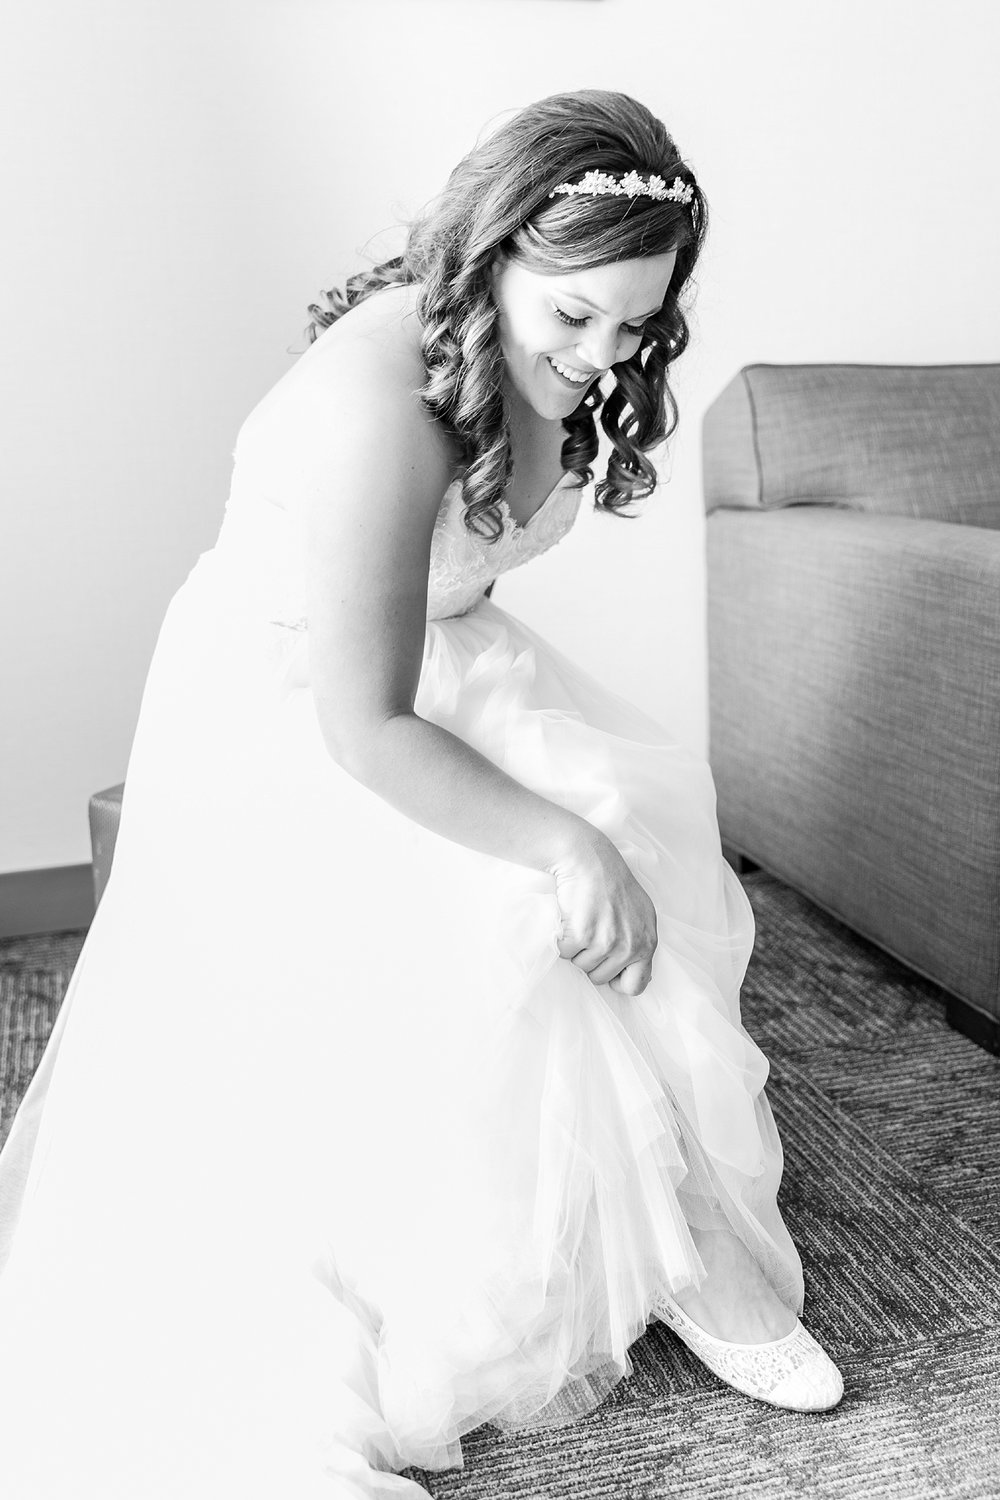 romantic-artful-candid-wedding-photos-in-st-clair-shores-at-the-white-house-wedding-chapel-by-courtney-carolyn-photography_0013.jpg